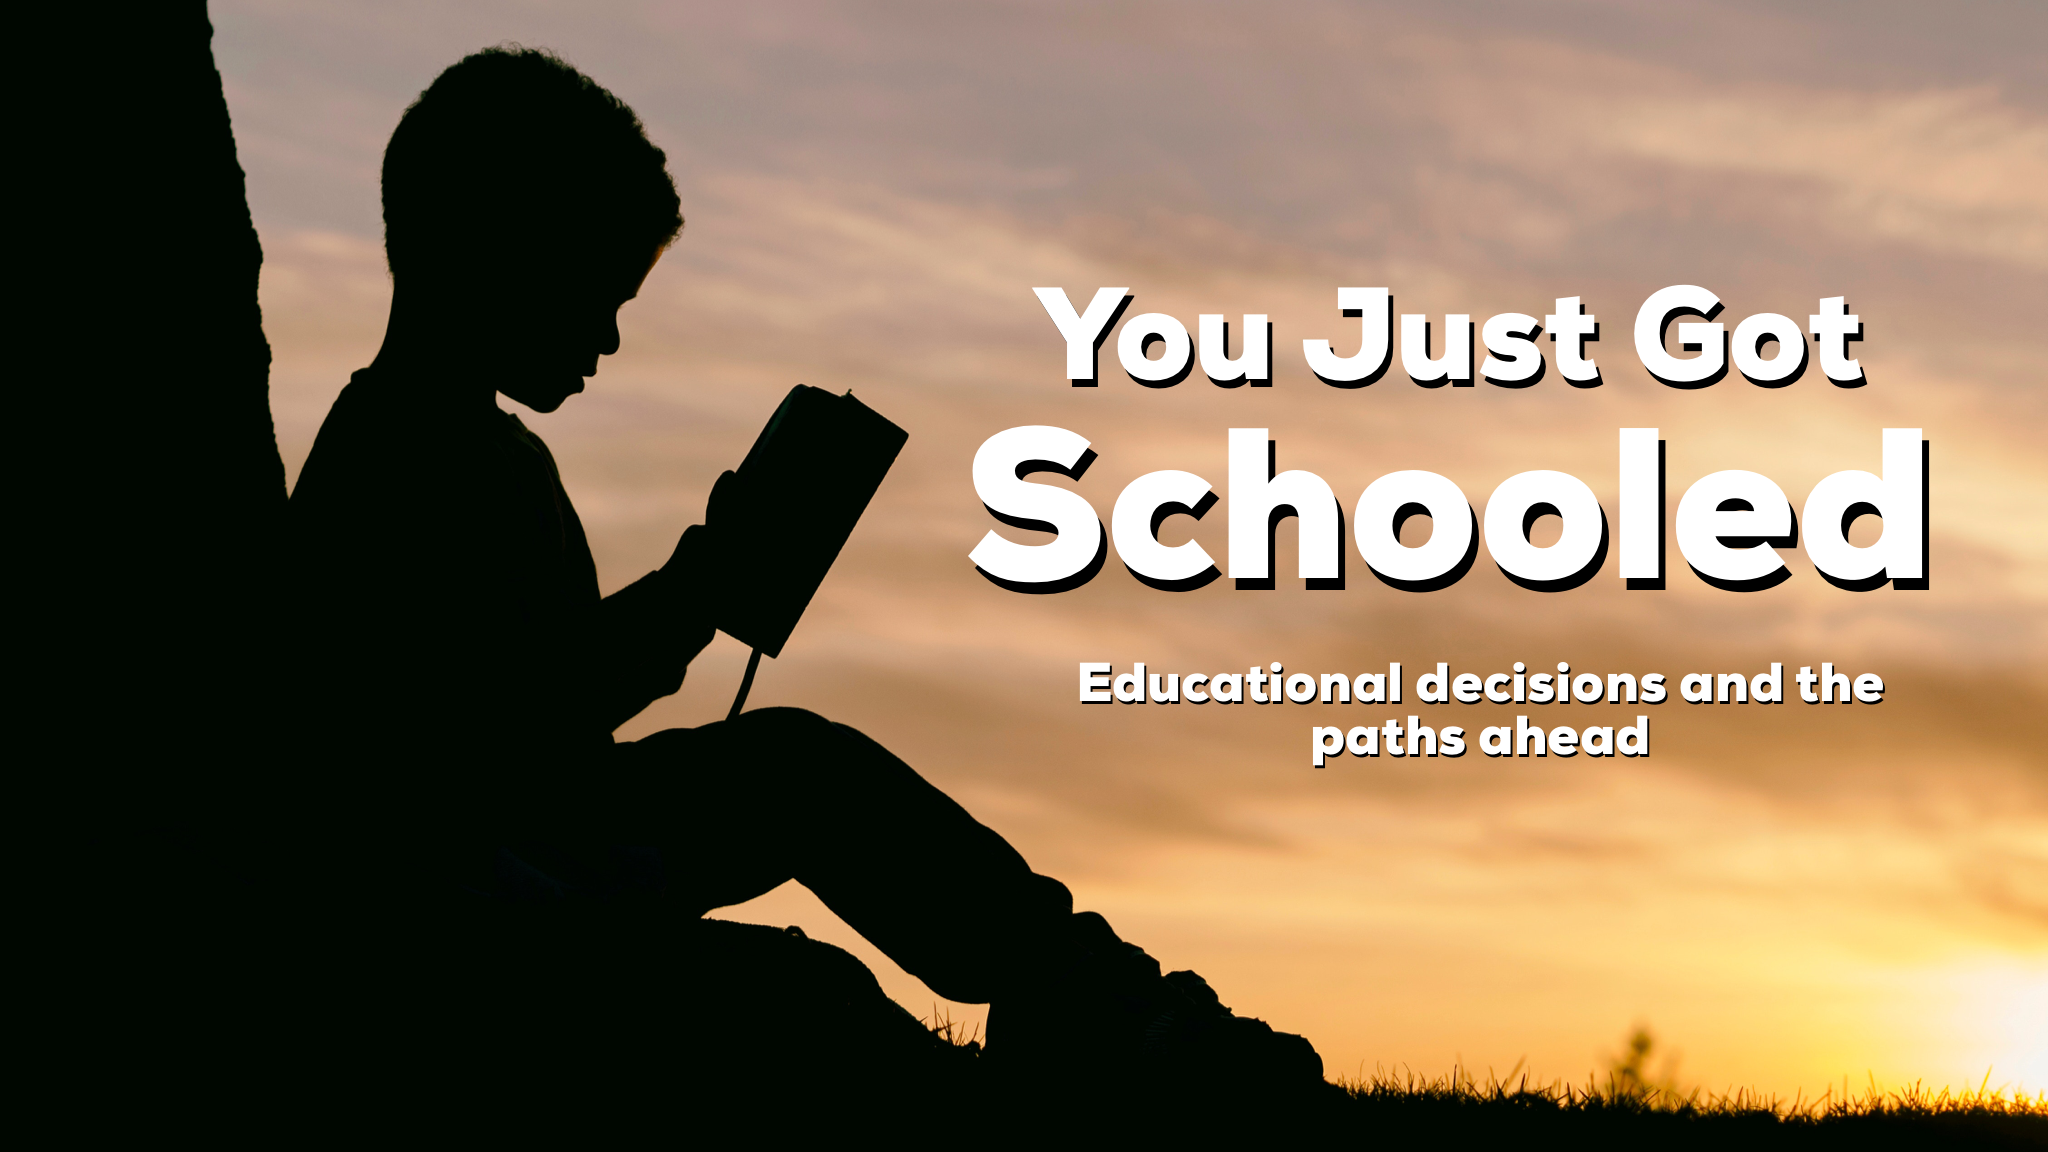 Reid and Jesse discuss educational choices and the attending difficulties and encouragements associated with each path.